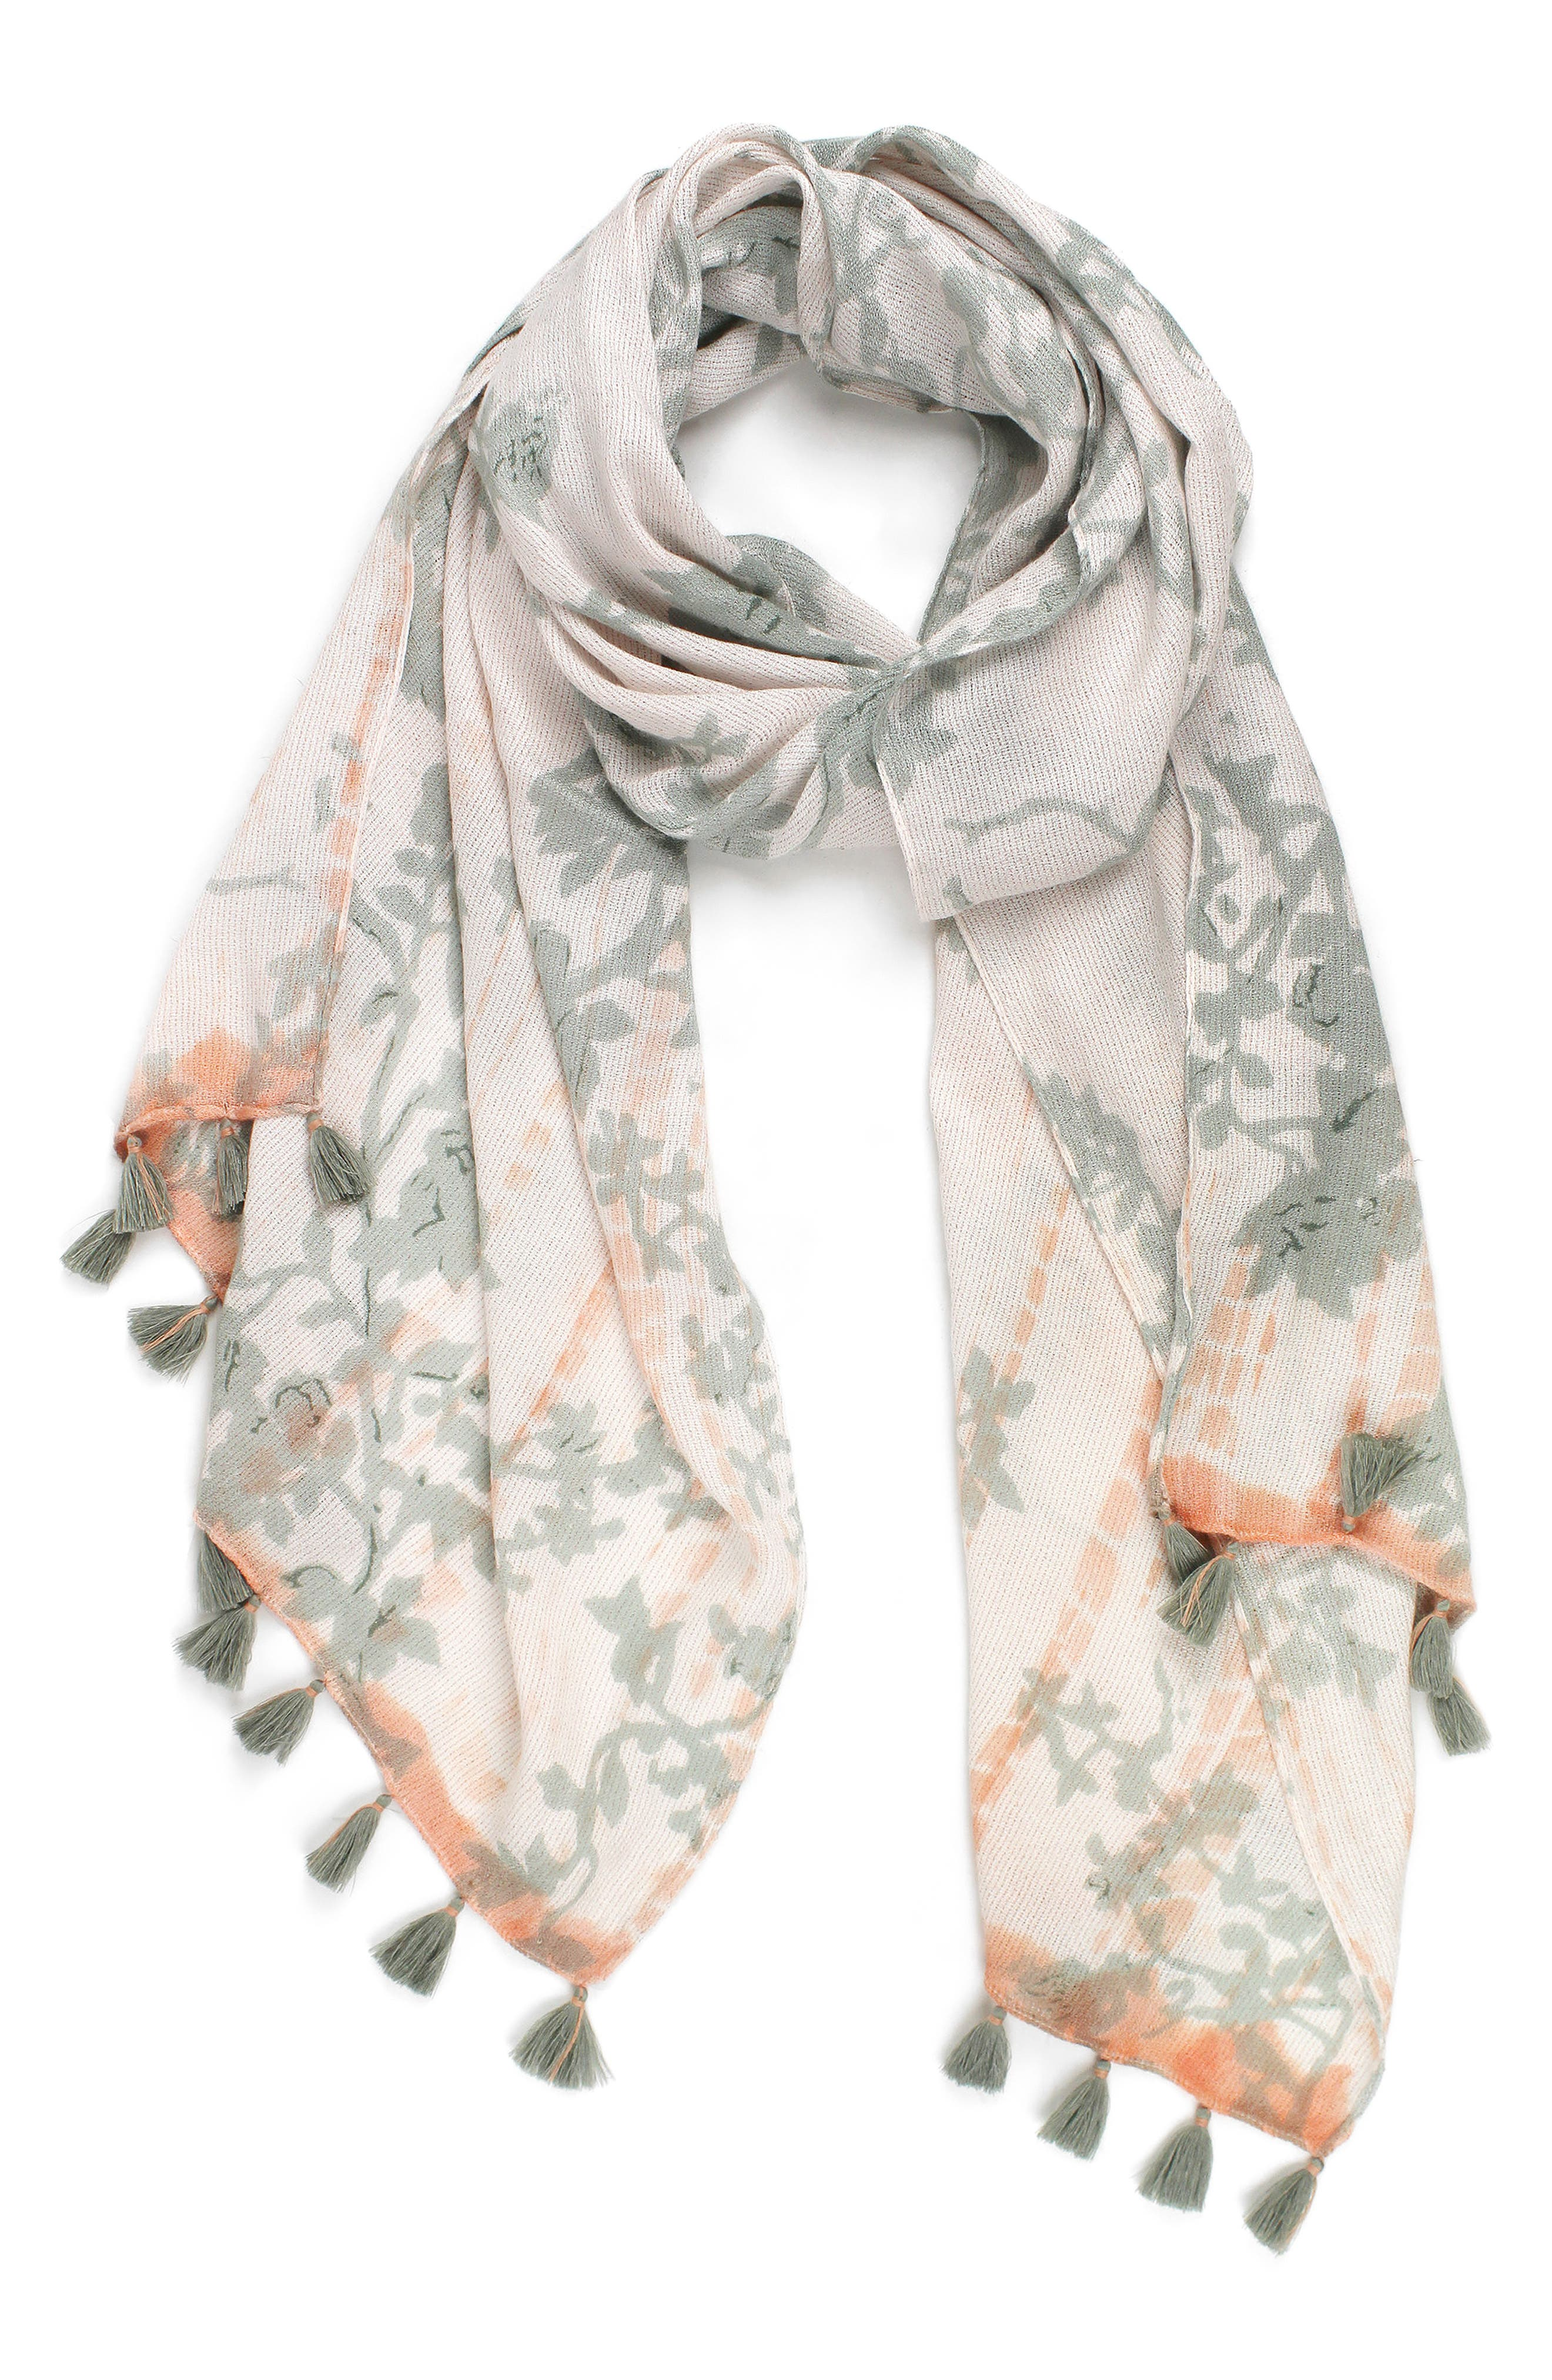 Tie Dye Garden Scarf,                             Main thumbnail 1, color,                             Oyster Grey/ White